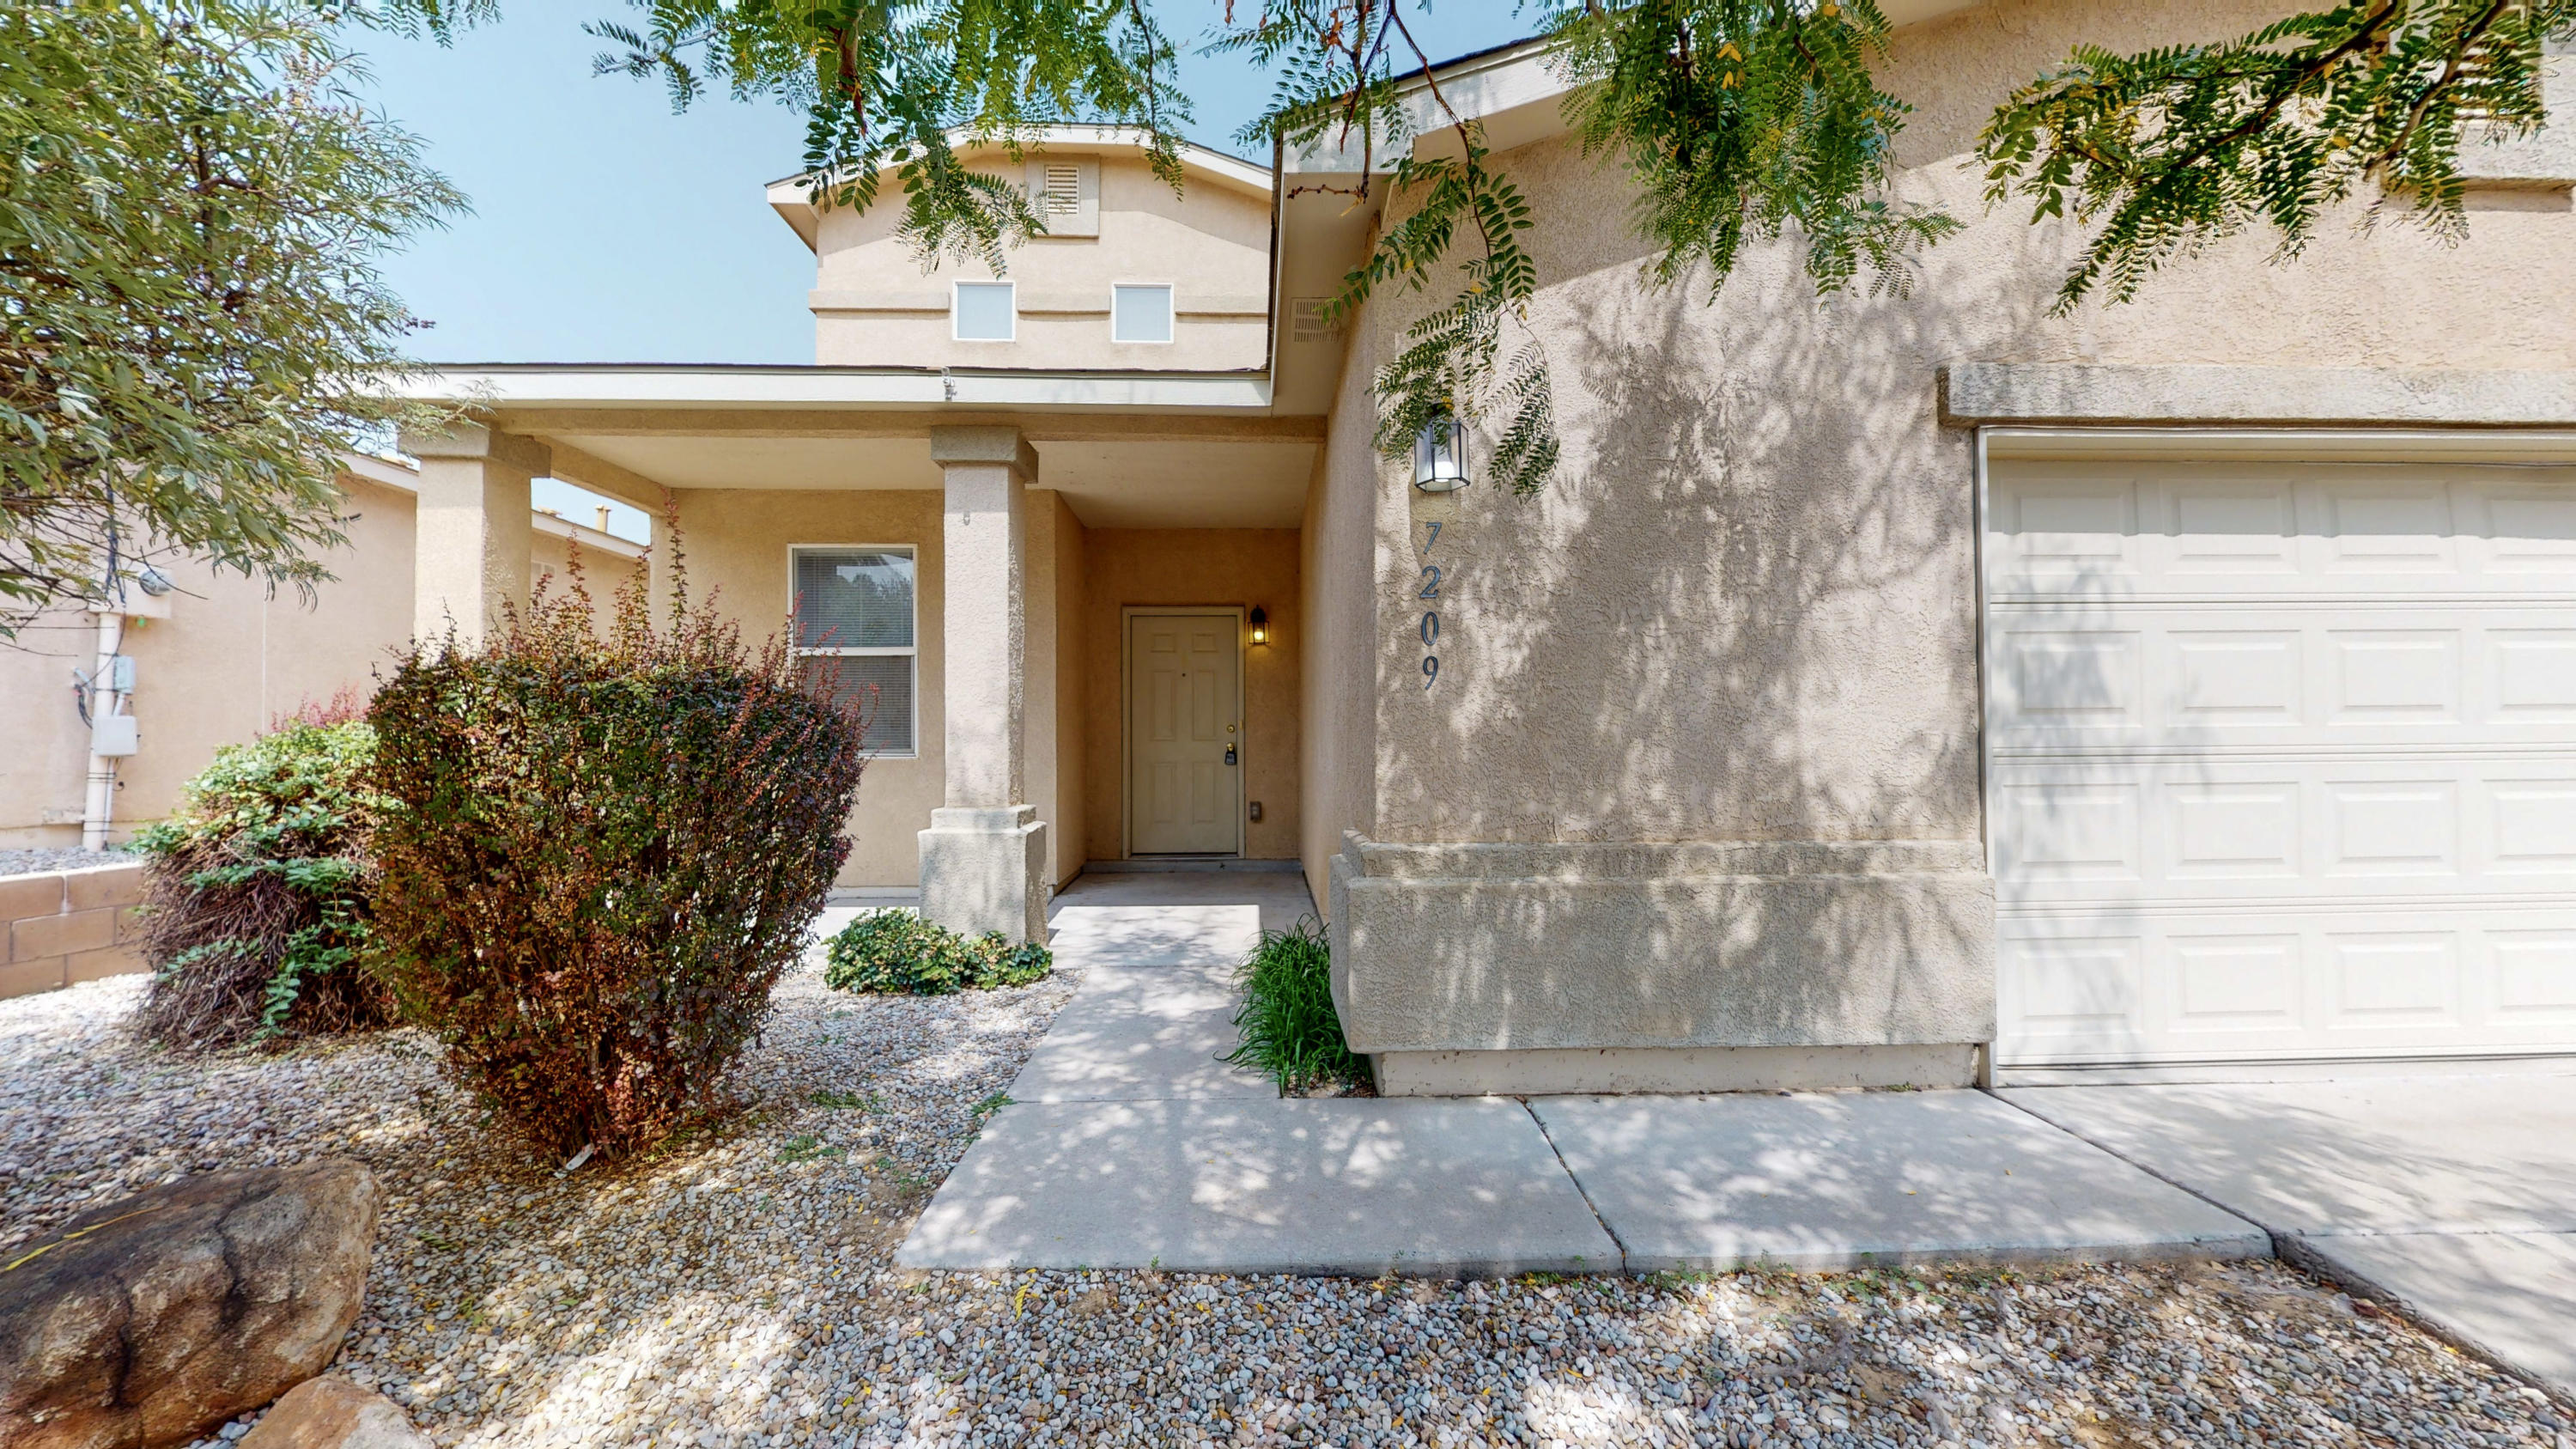 Spacious 5 bedroom, 2.5 bathroom home in NW Albuquerque just became available! Features include **2663 square feet**New carpet throughout**New Paint Throughout**Master Bedroom Downstairs**Master Bath Double Sinks & Separate Tub/Shower**Secondary Bath Double Sinks**Open Floorplan**Walk in Closets in ALL Bedrooms**Refrigerated Air**Oversized 2.5 Garage for extra storage**Nice sized yard**Conveniently located near parks, shopping, and schools**